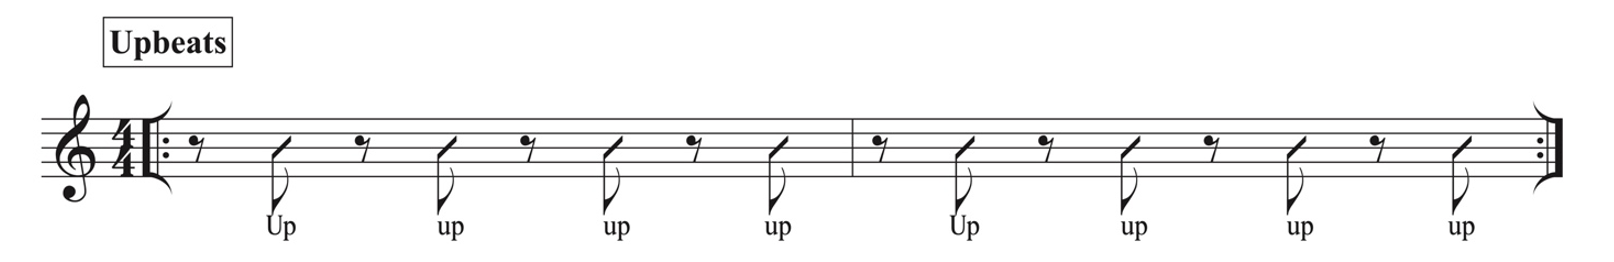 eighth notes clapped on the upbeats in a musical bar